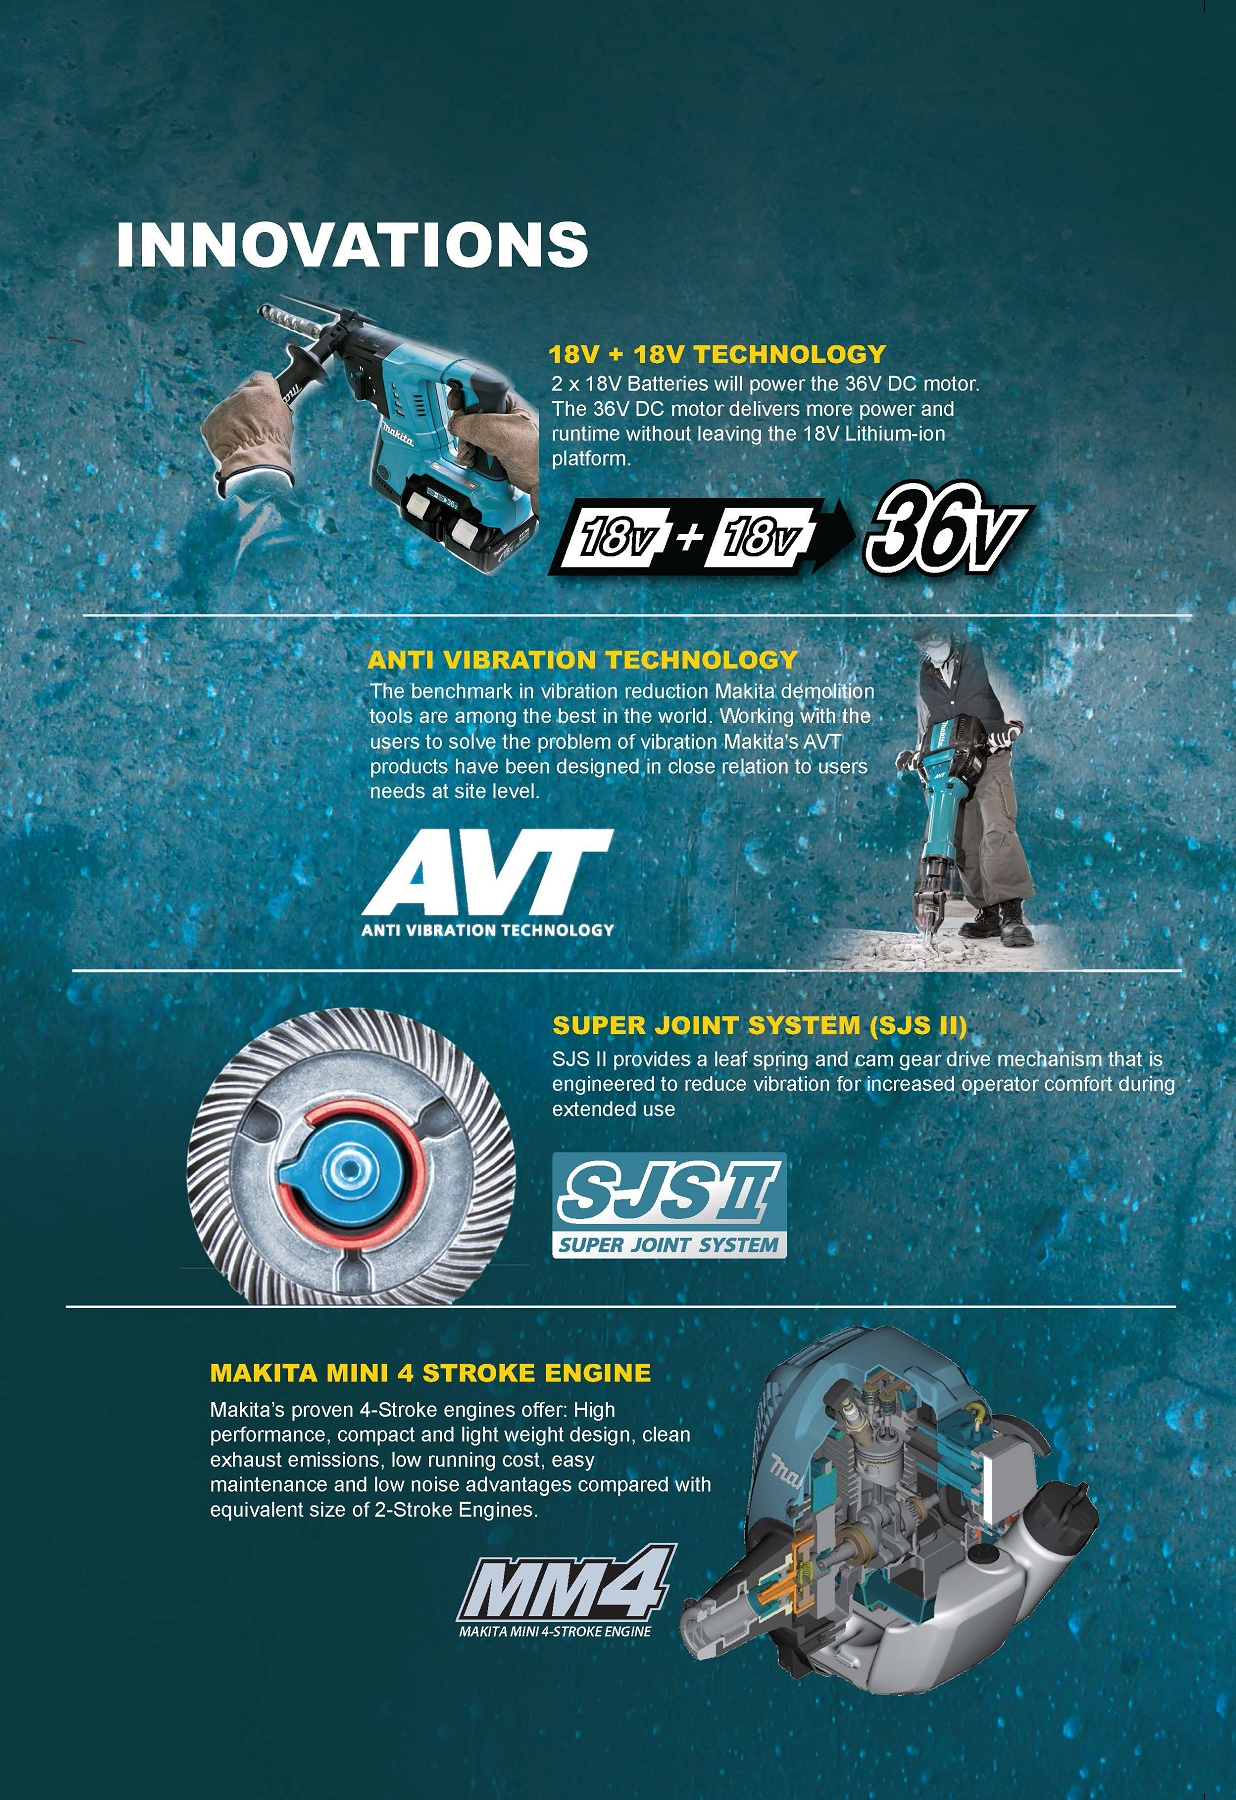 Makita General Catalog Pages 1 - 50 - Text Version  e471512c22d